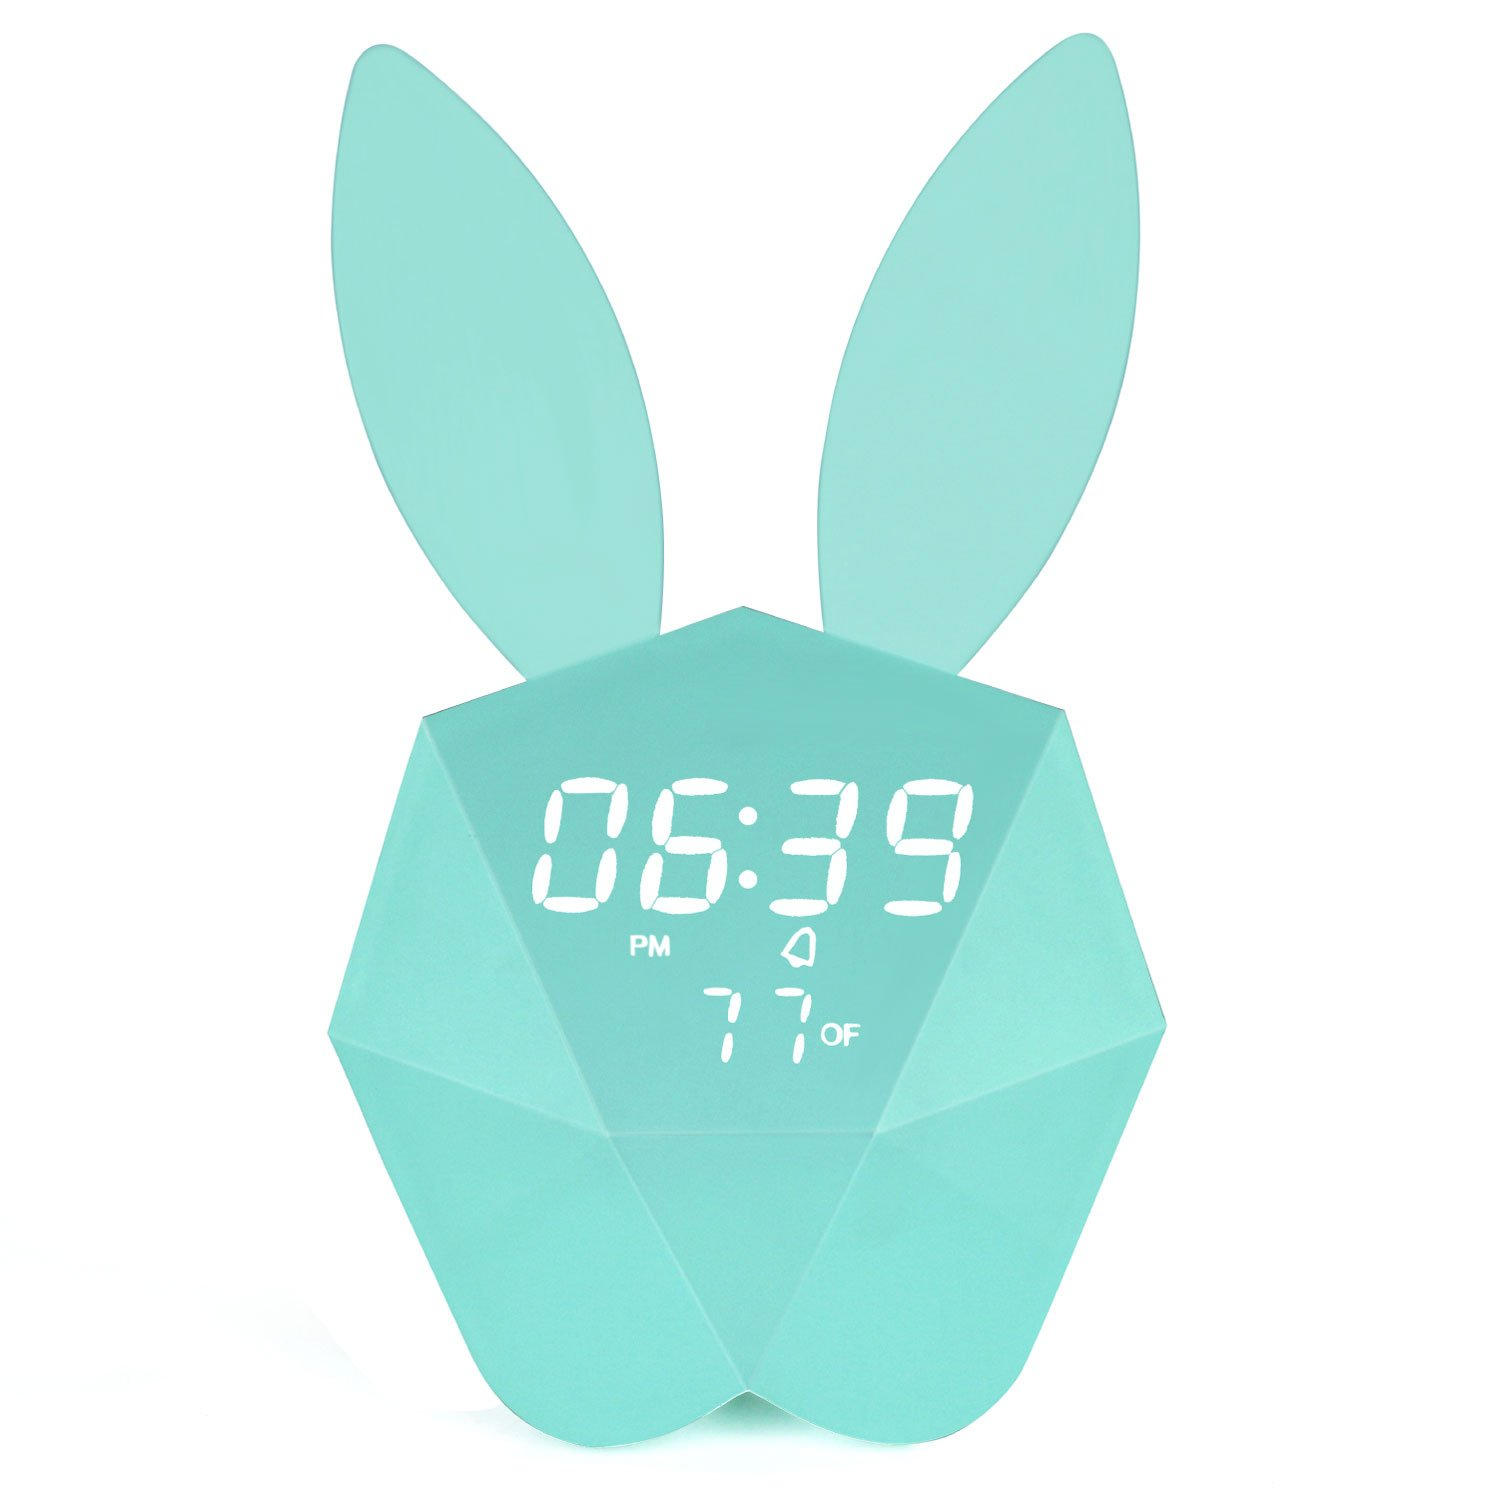 bunny led rocker switch wiring diagram wiring library amazon com bunny rabbit alarm clock led night light voice control sound sensitive